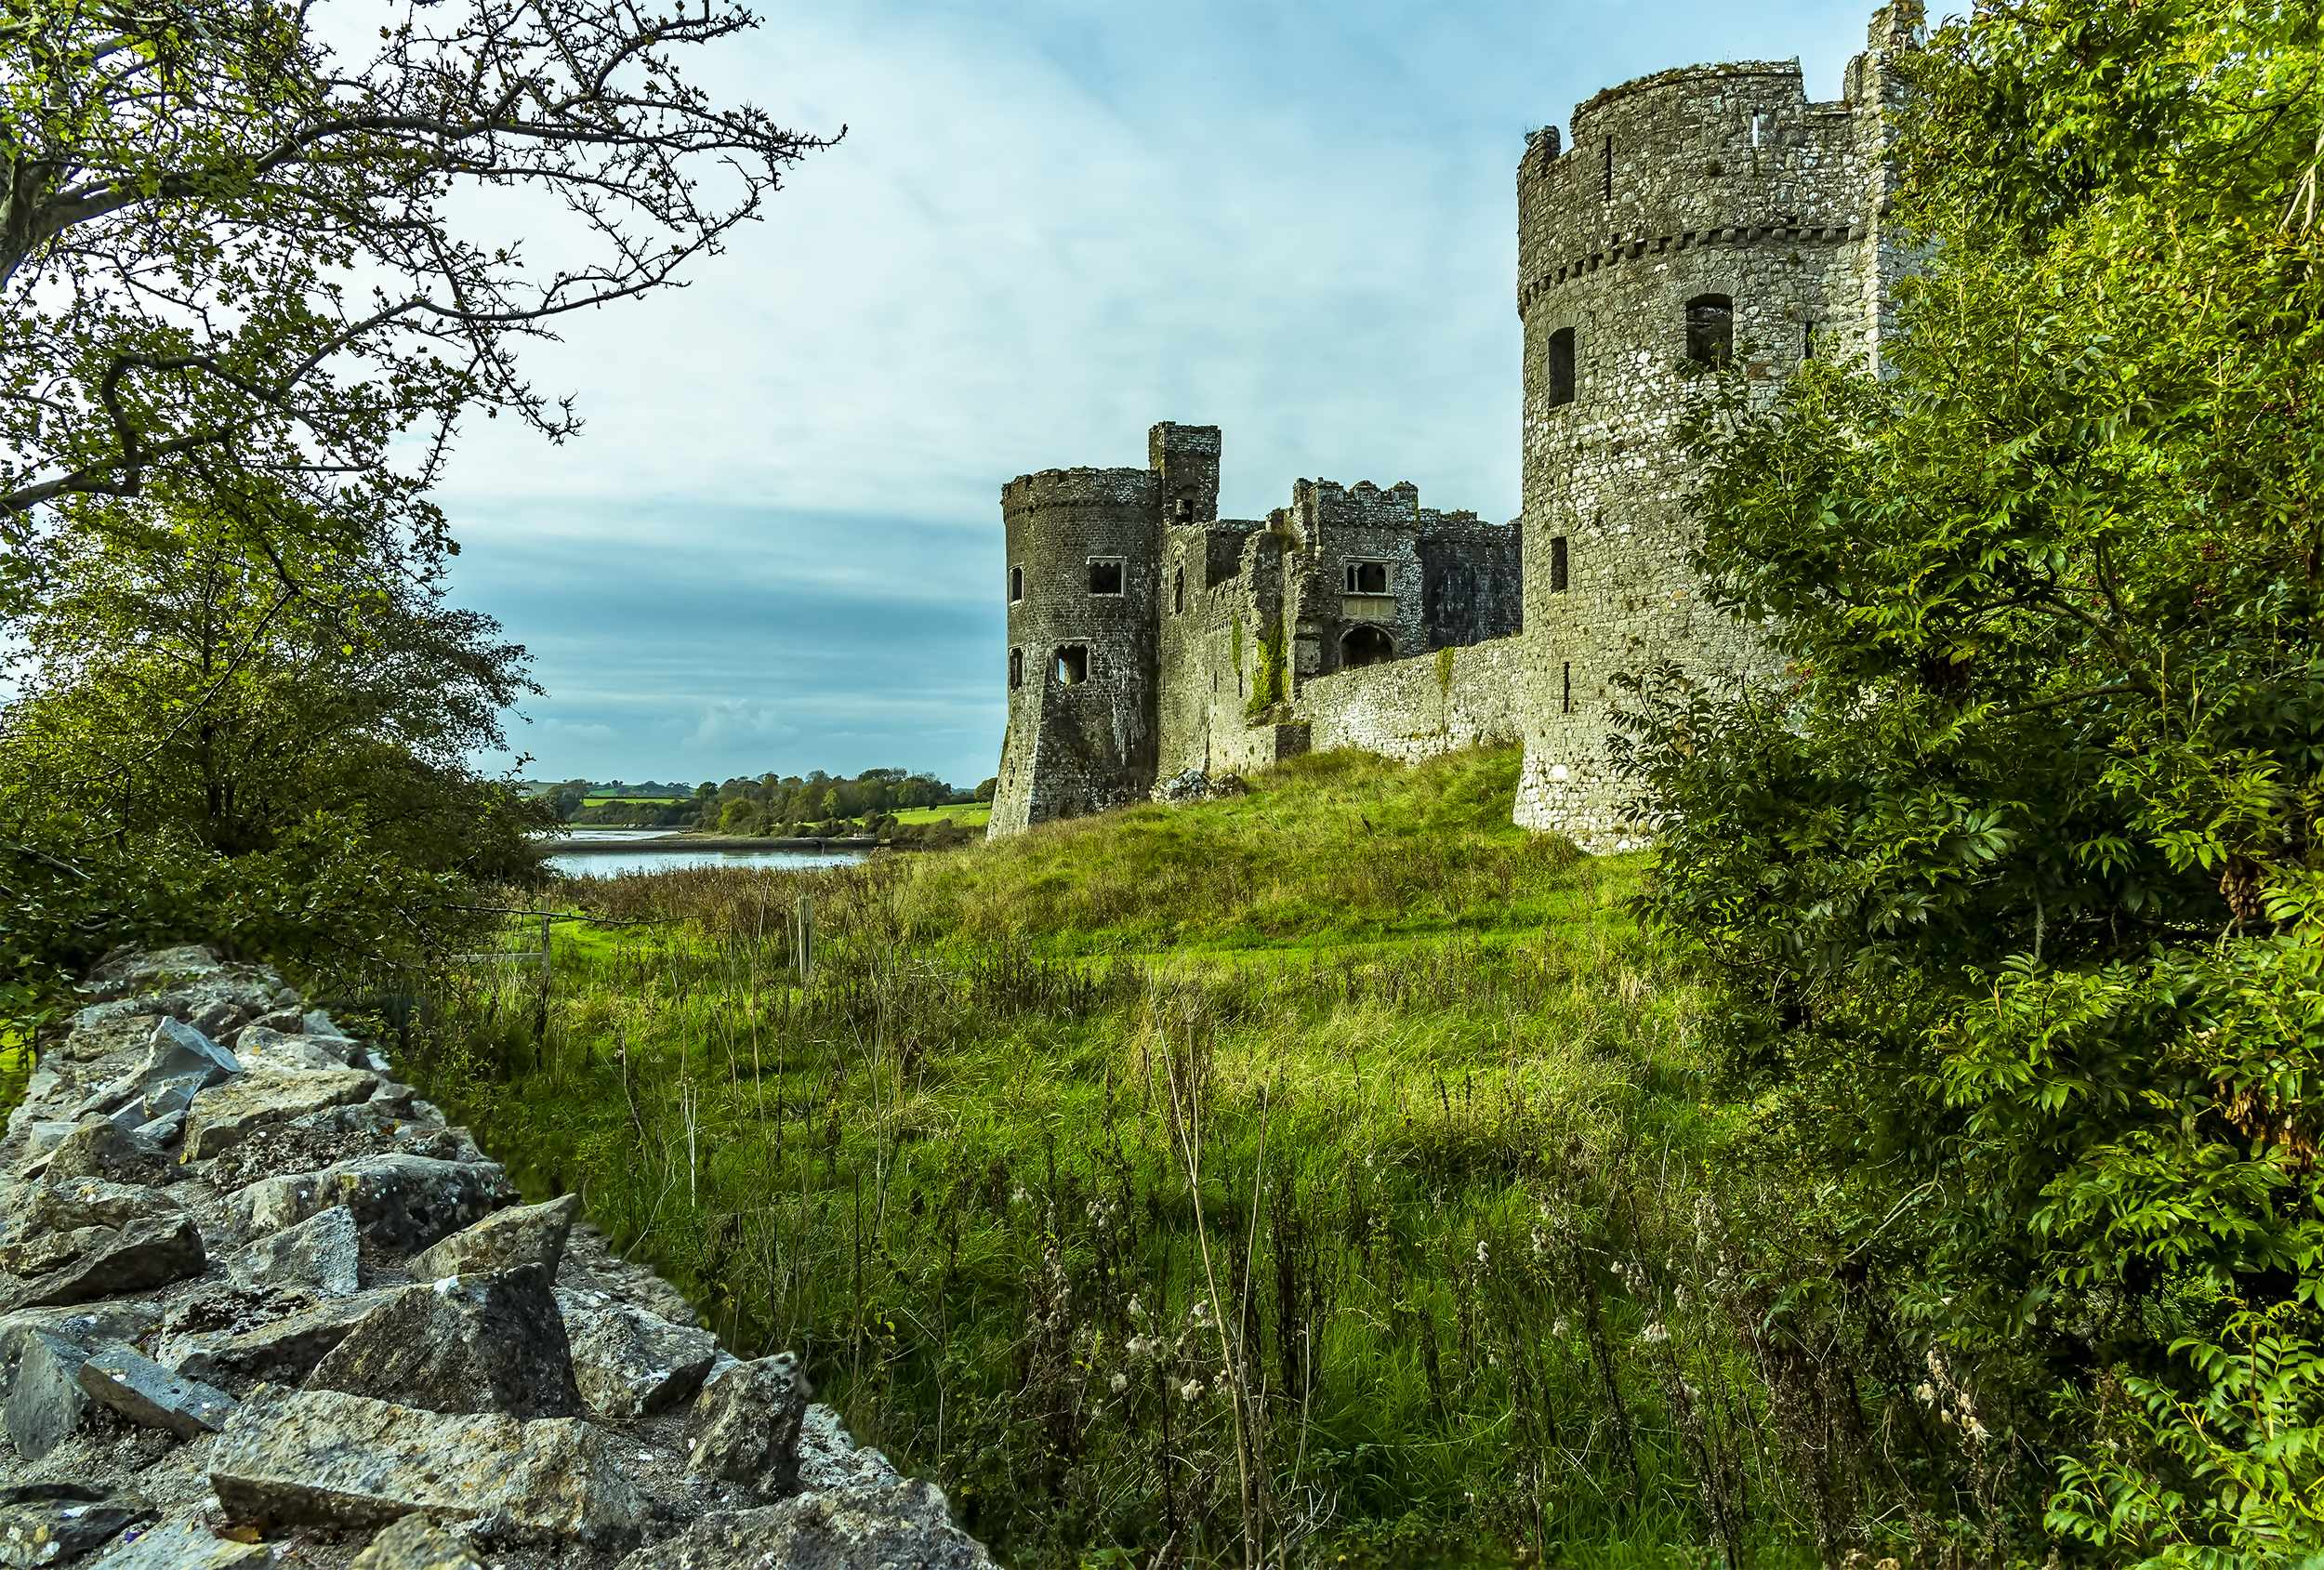 A view towards the Carew estuary between a dry stone wall and the ruins of Carew Castle, Pembrokeshire, UK. (Dreamstime)